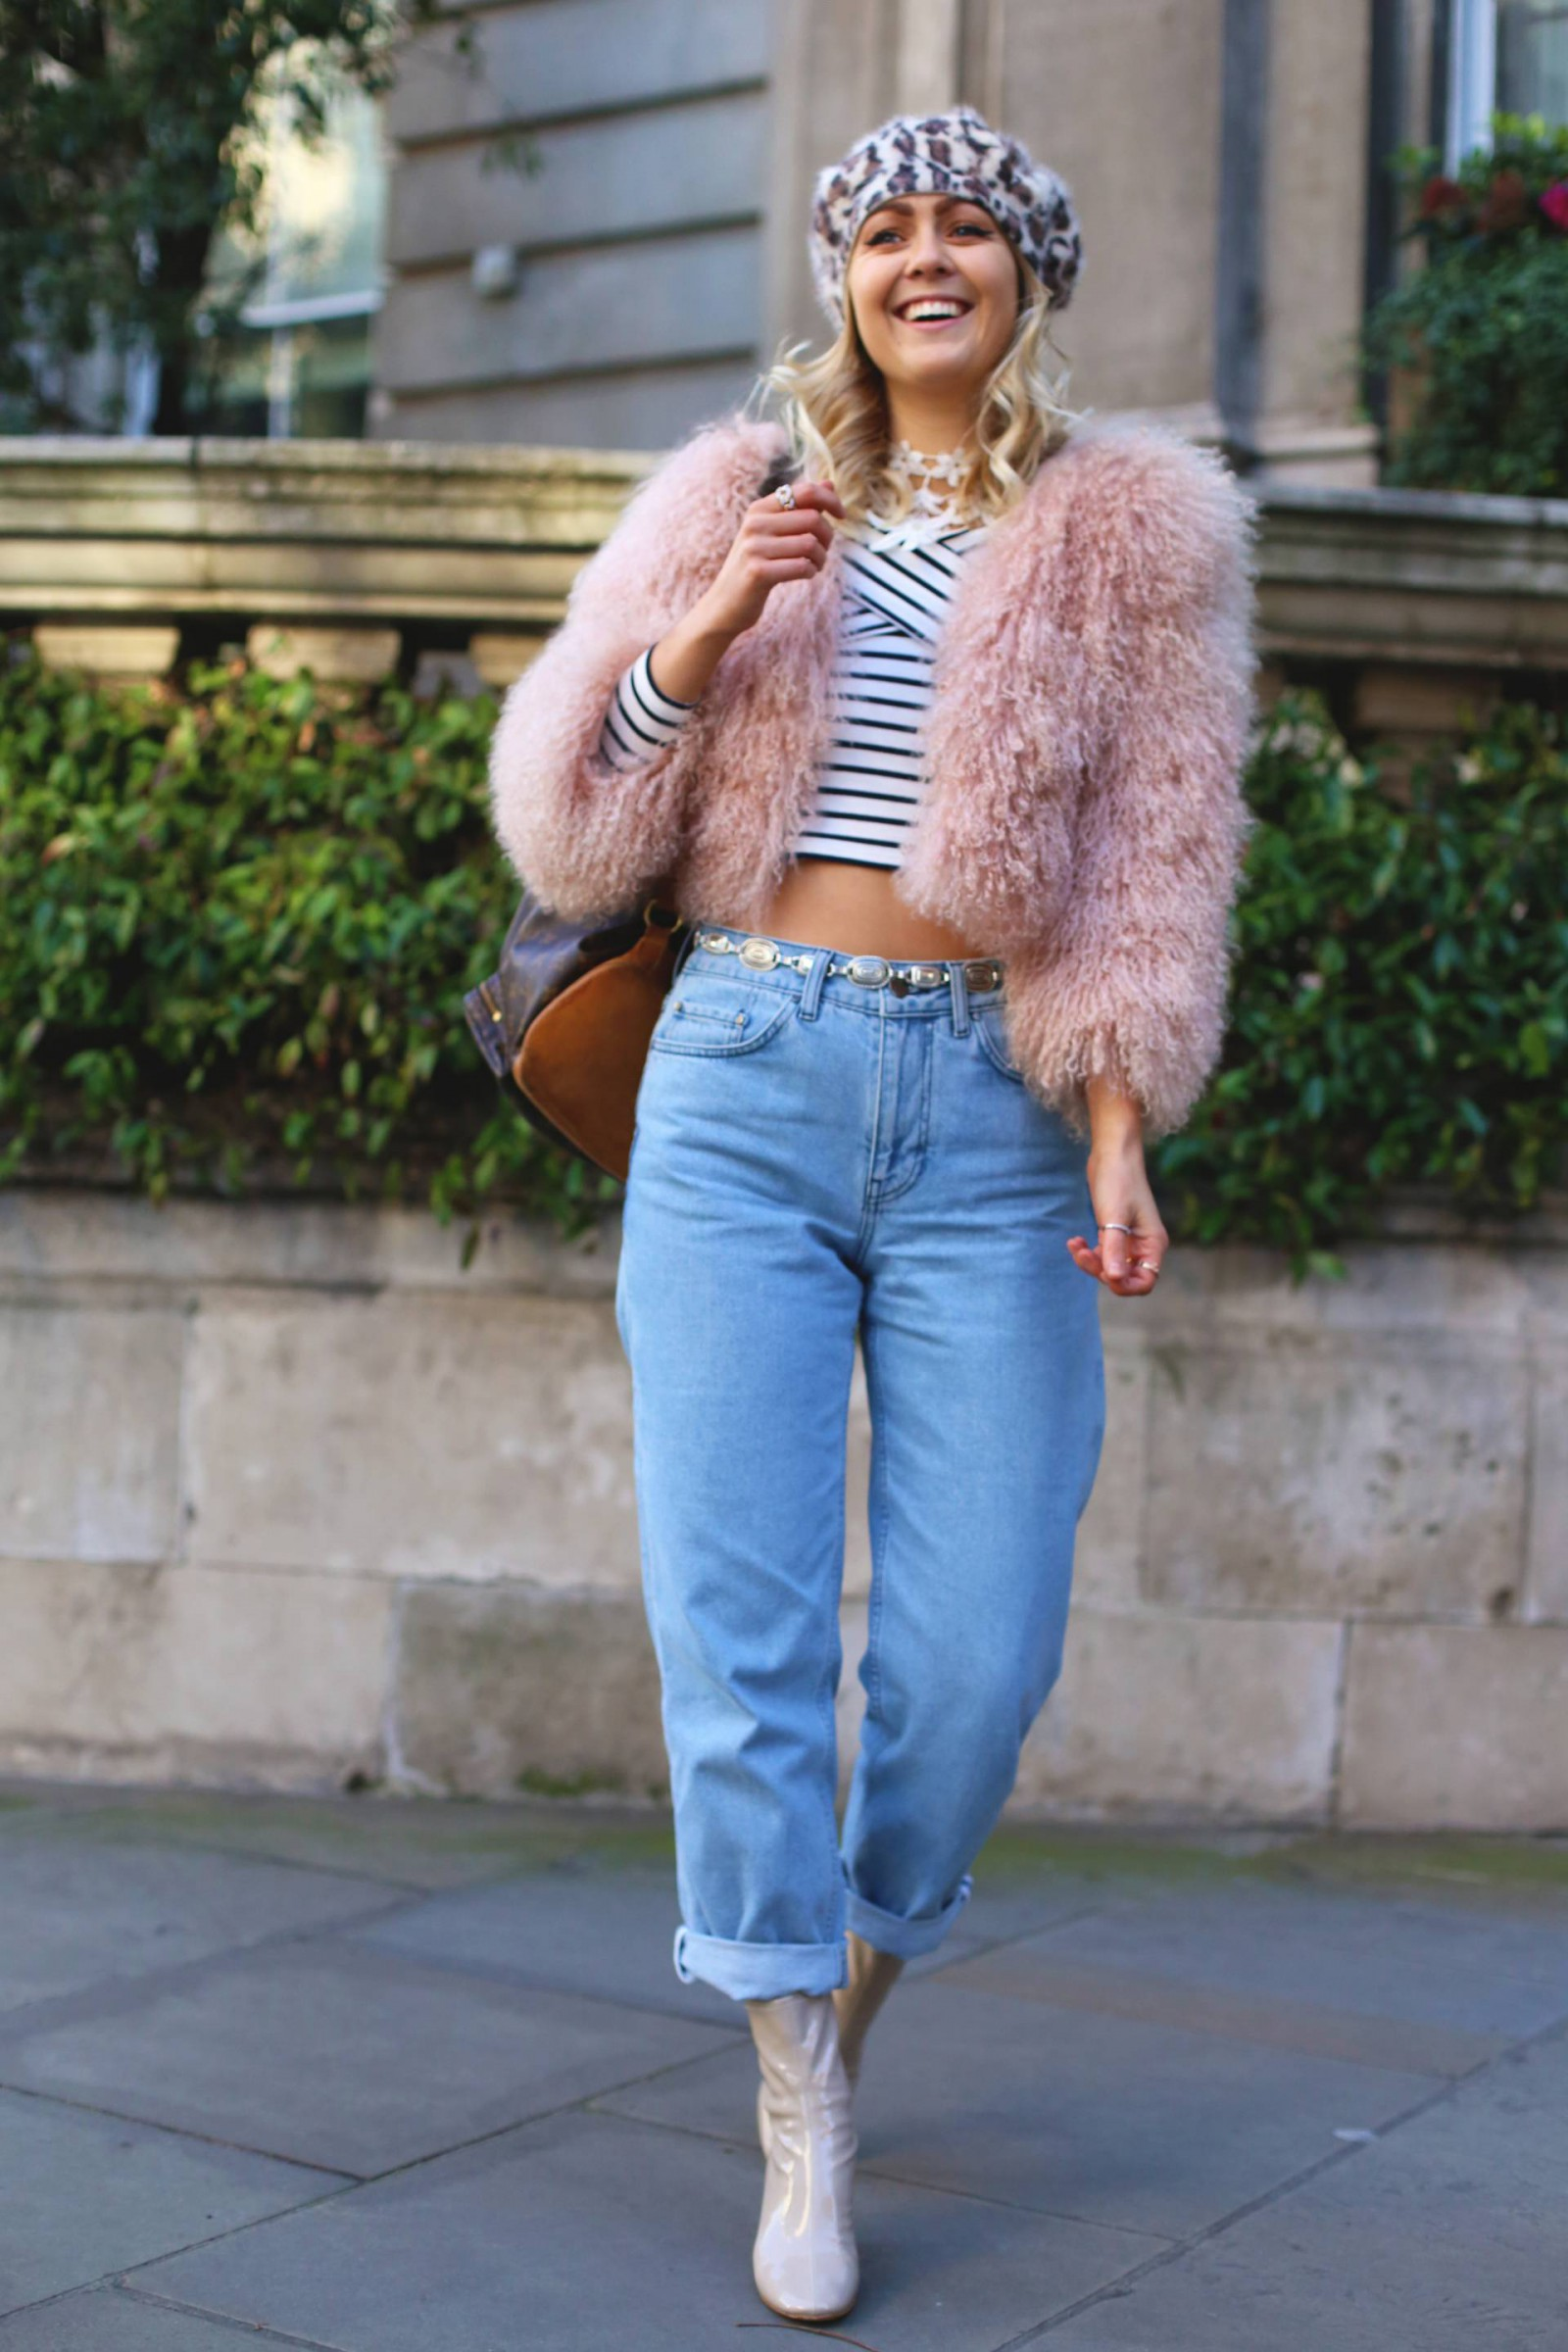 topshop_boutique_boyfriend_jeans_bardot_Stripe_top_mongolian_pink_fur_jacket_leopard_print_beret_louis_vuitton_backpack